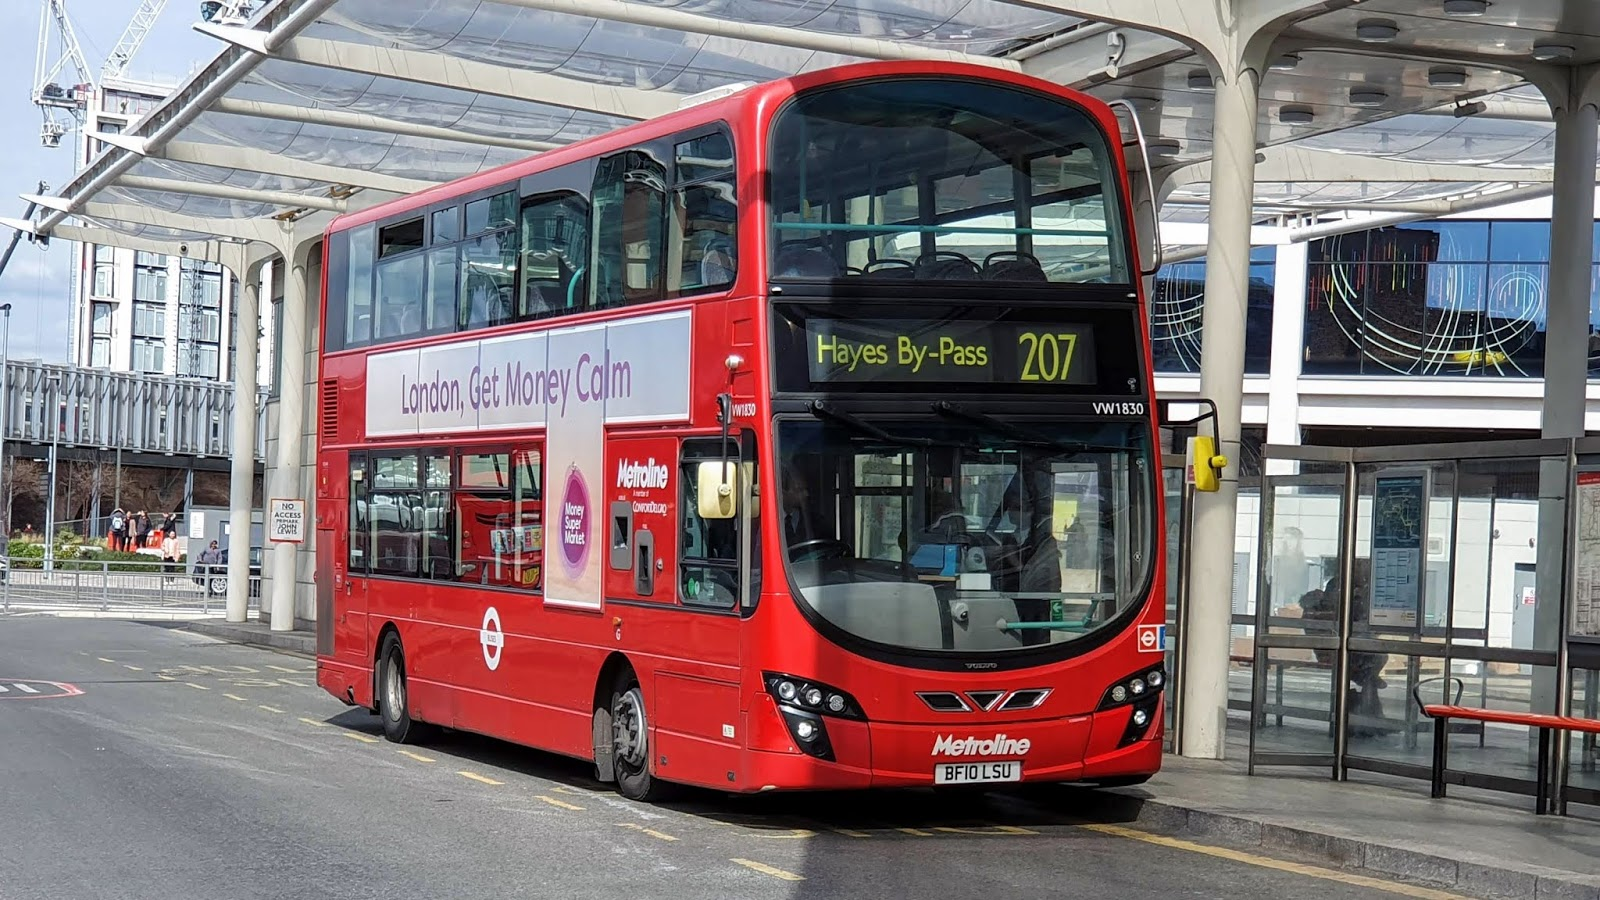 London Connected The By-Pass Of Metroline-9915